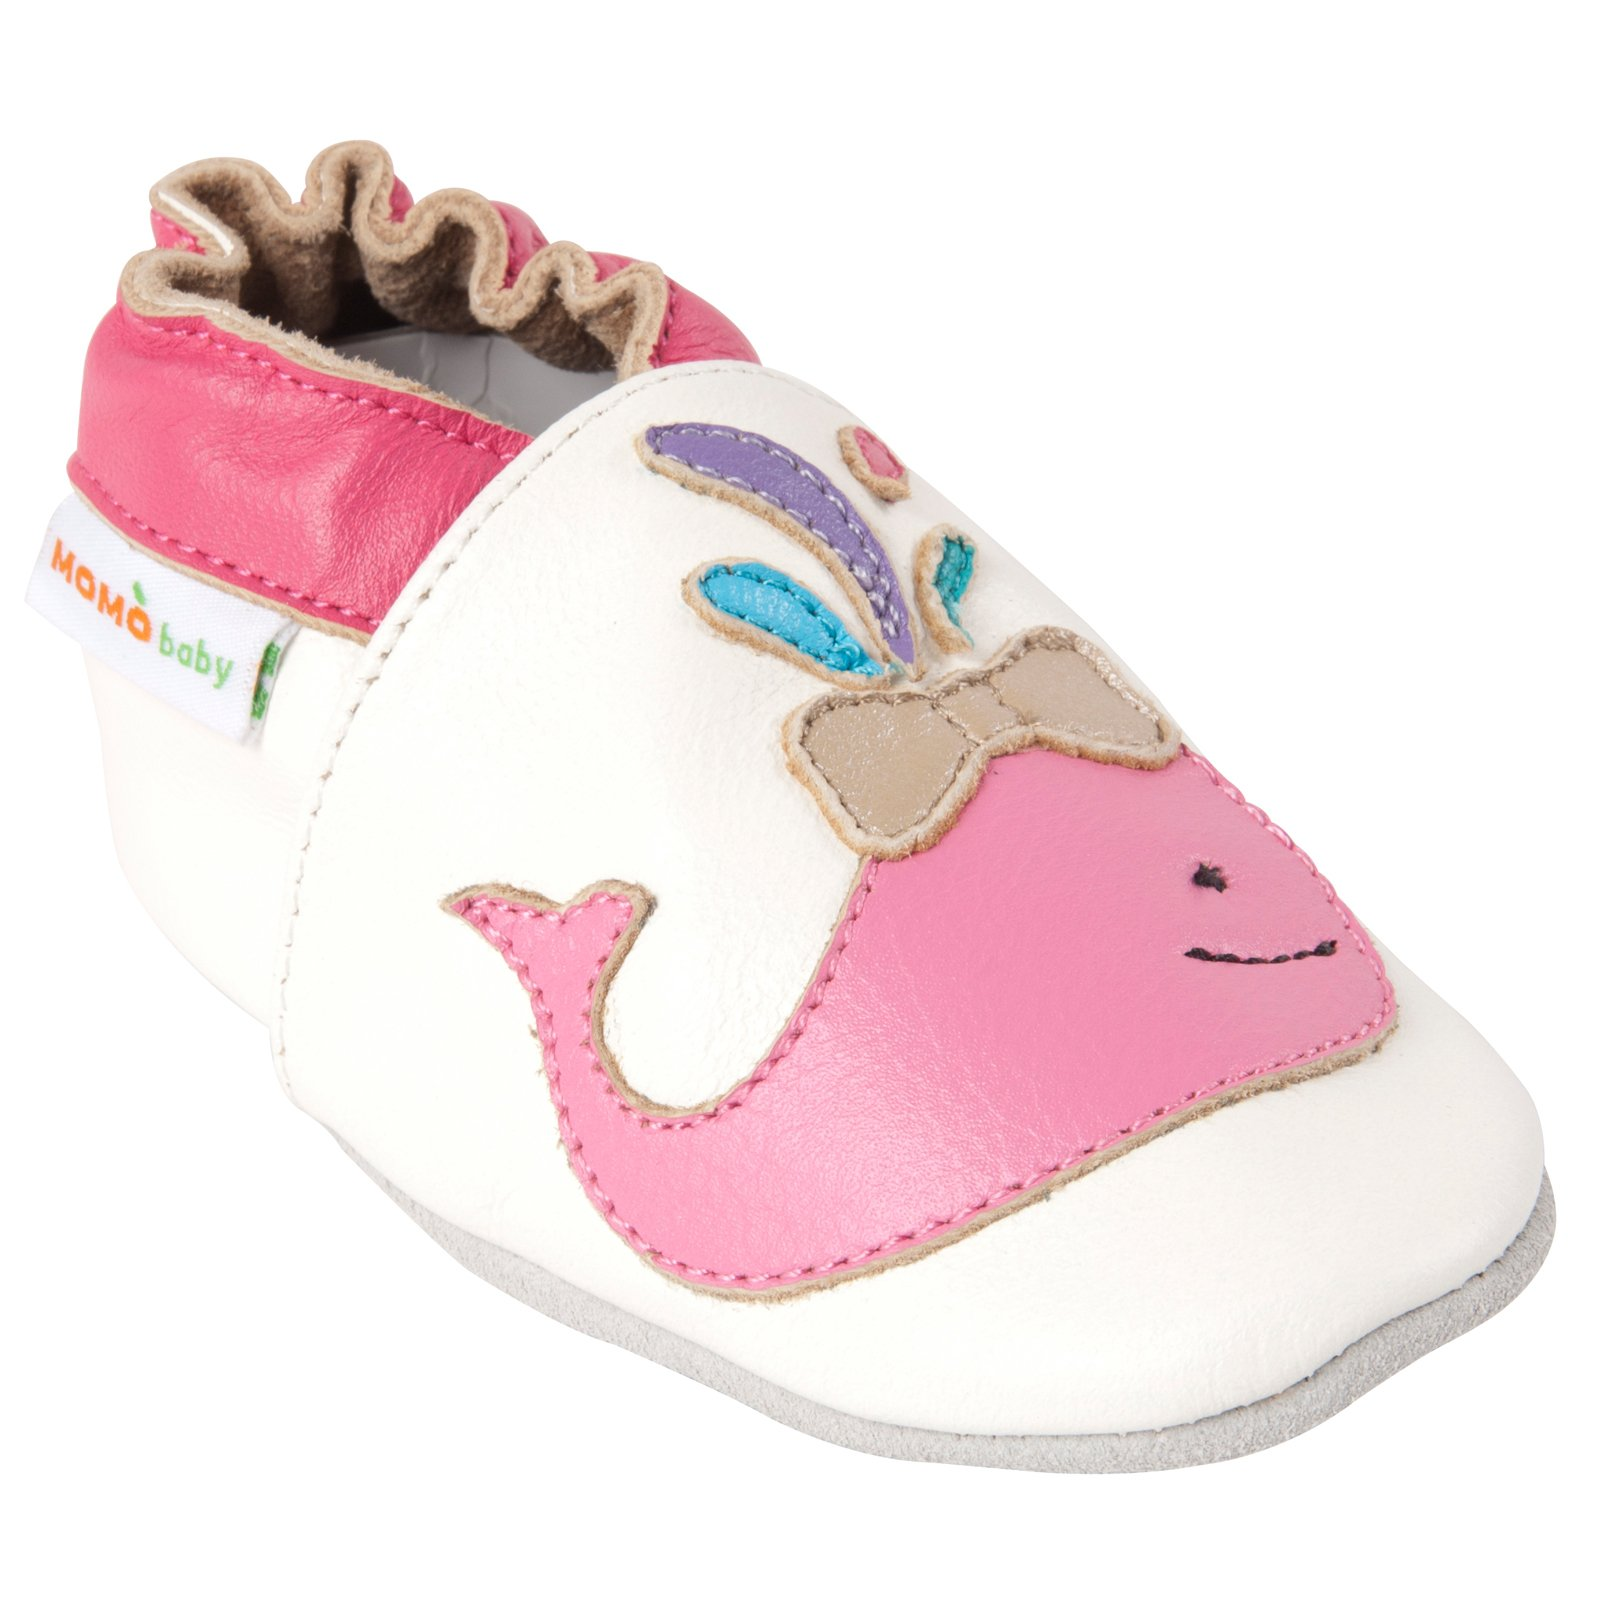 Momo Baby Girls Soft Sole Leather Crib Bootie Shoes - 6-12 Months/3-4 M US Toddler by Momo Baby (Image #2)